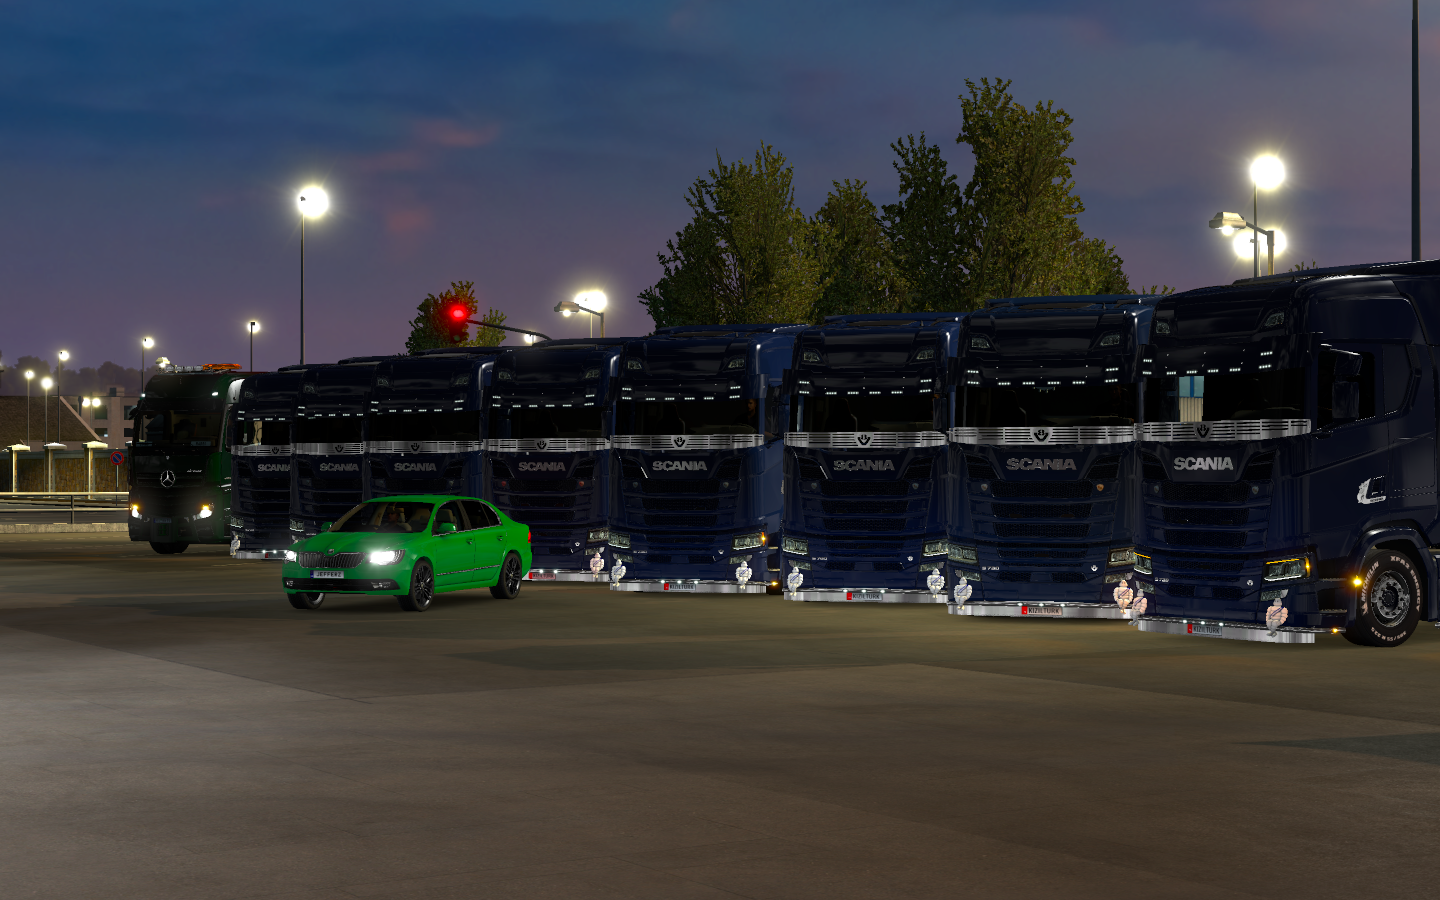 ets2_20190525_213436_00.png